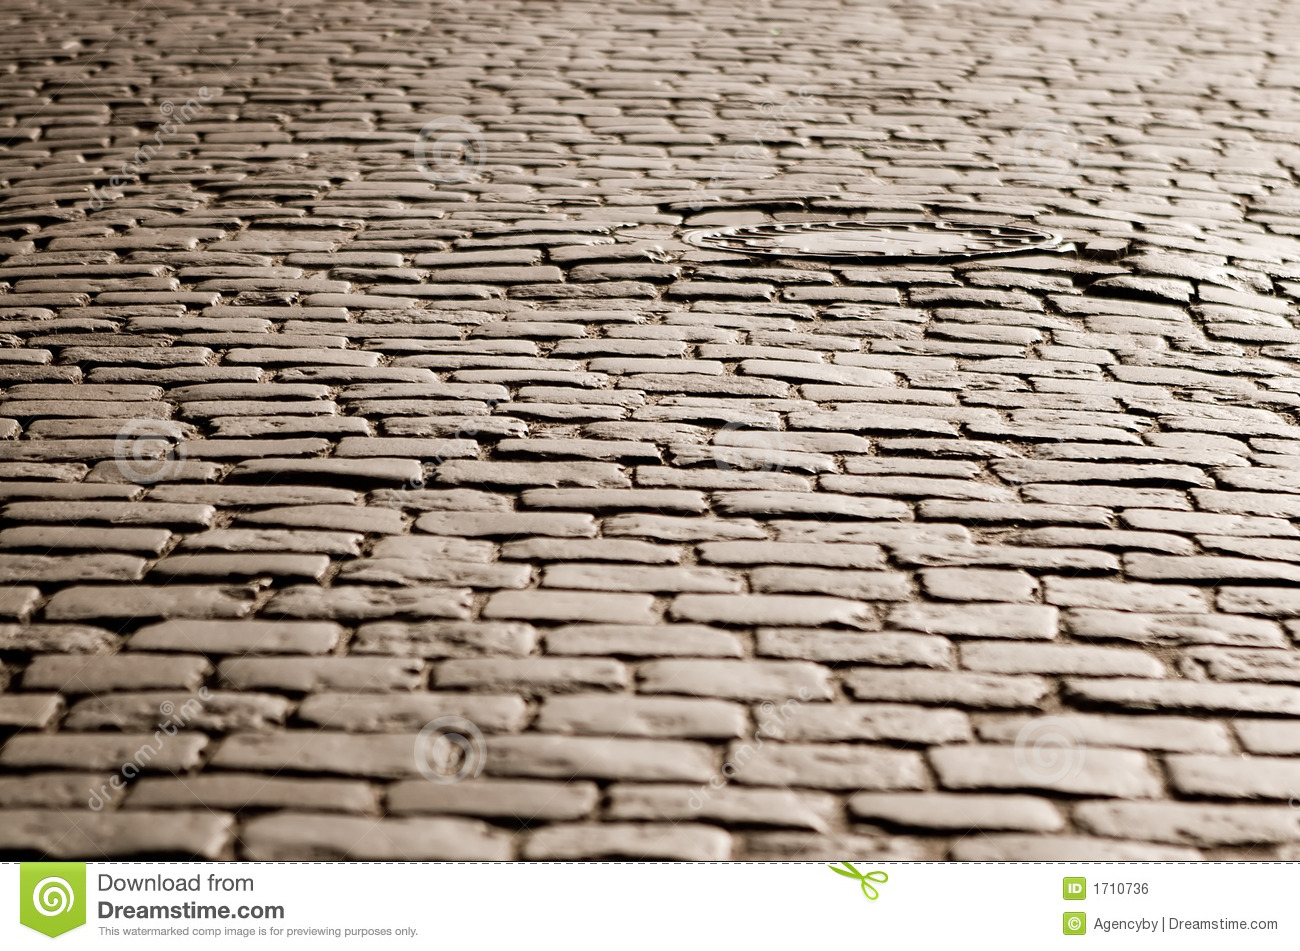 Old Cobblestone Road Royalty Free Stock Image   Image  1710736